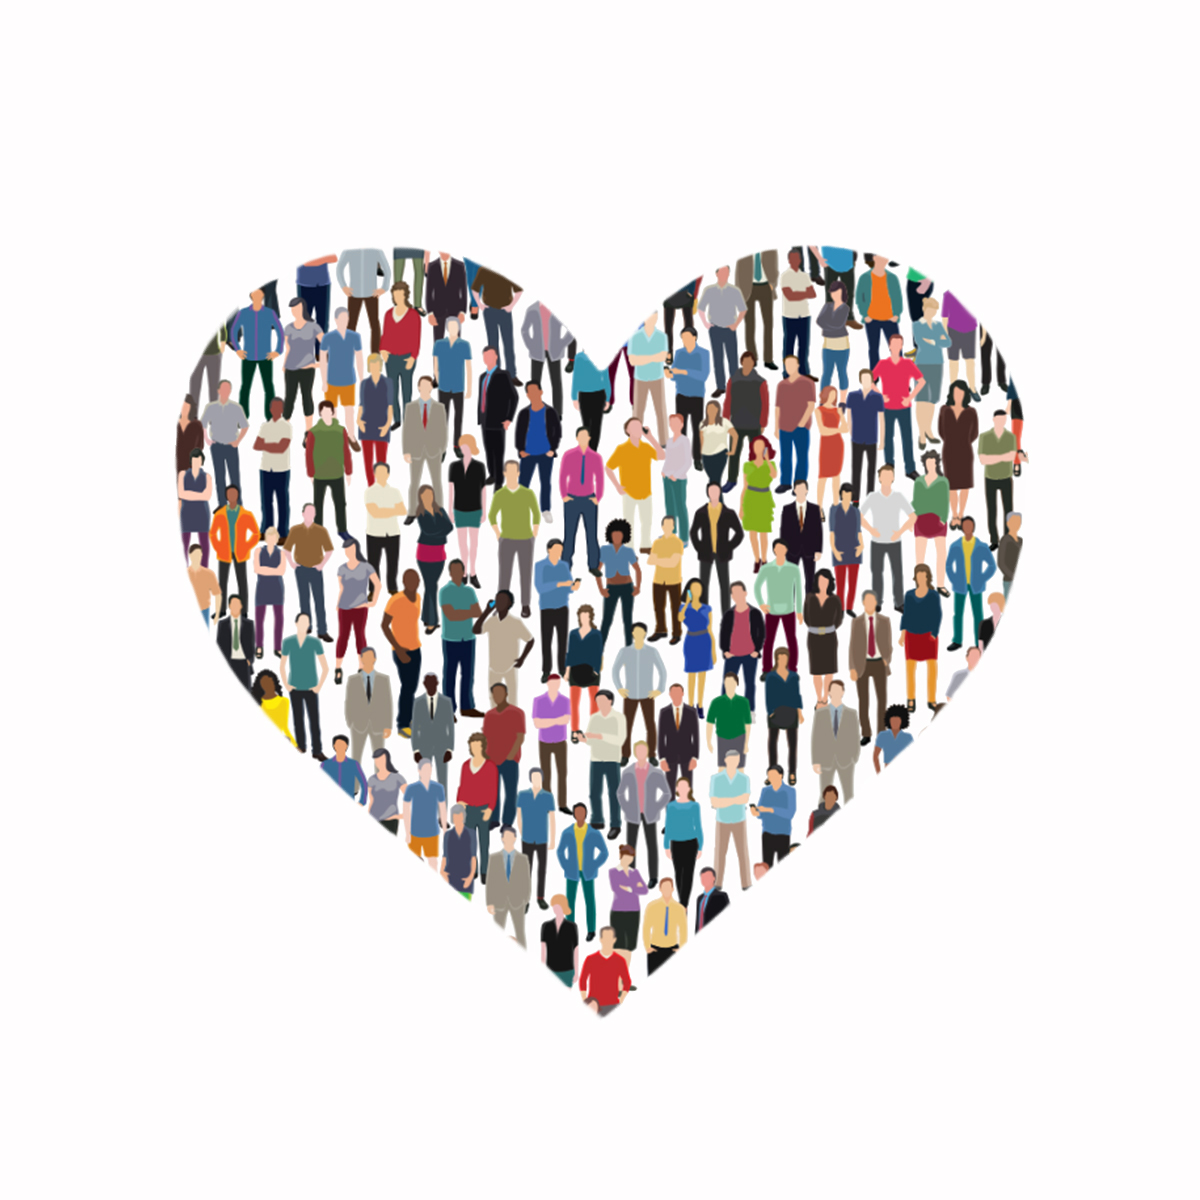 A postcard with an image of a crowd of people standing together to make a heart.